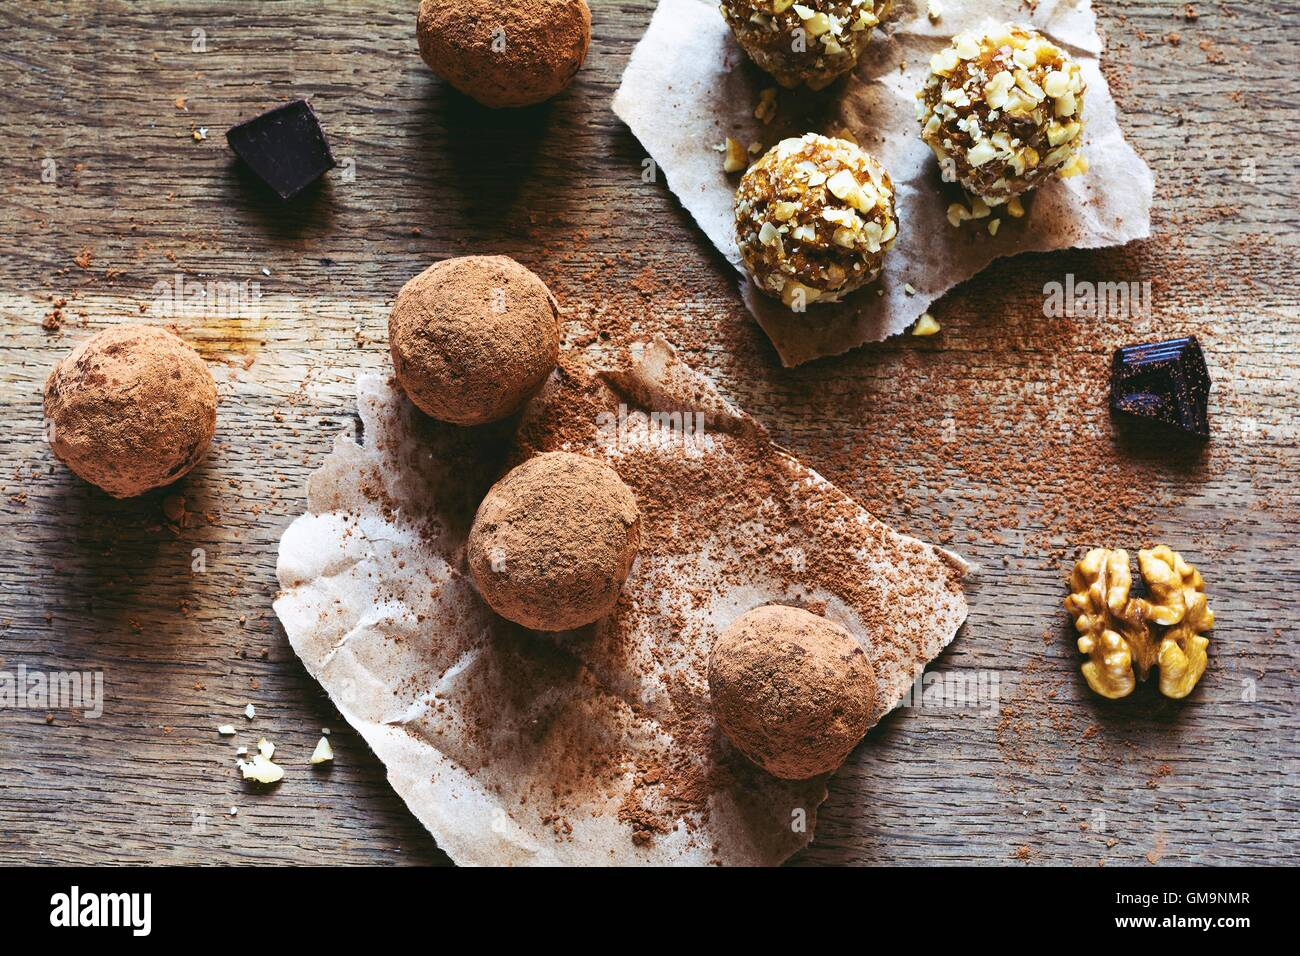 Homemade chocolate truffle balls - Stock Image